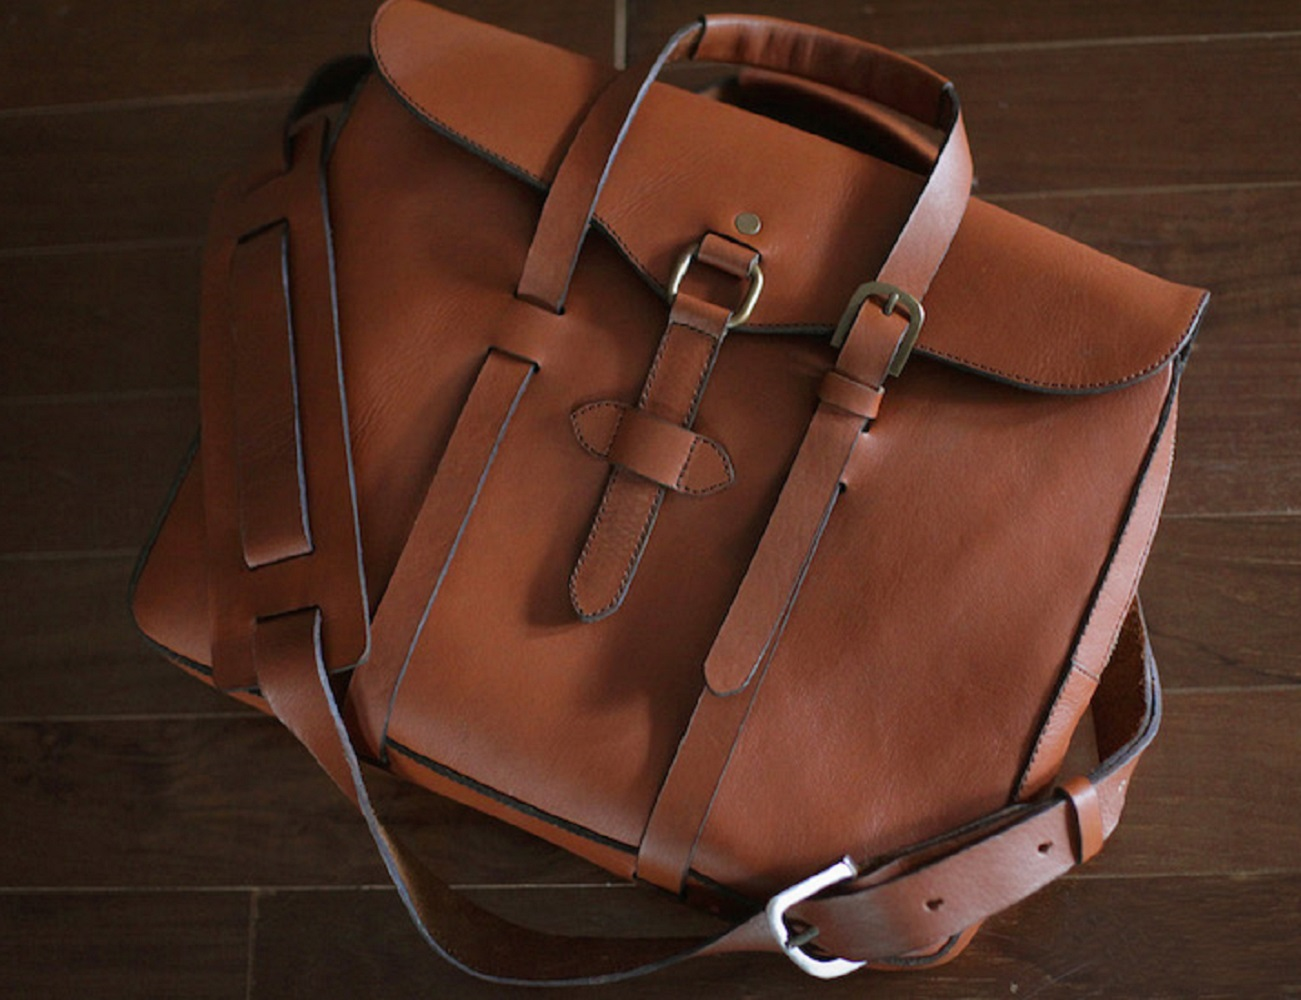 The+C.O.+Series+Leather+Bag+By+Cravar